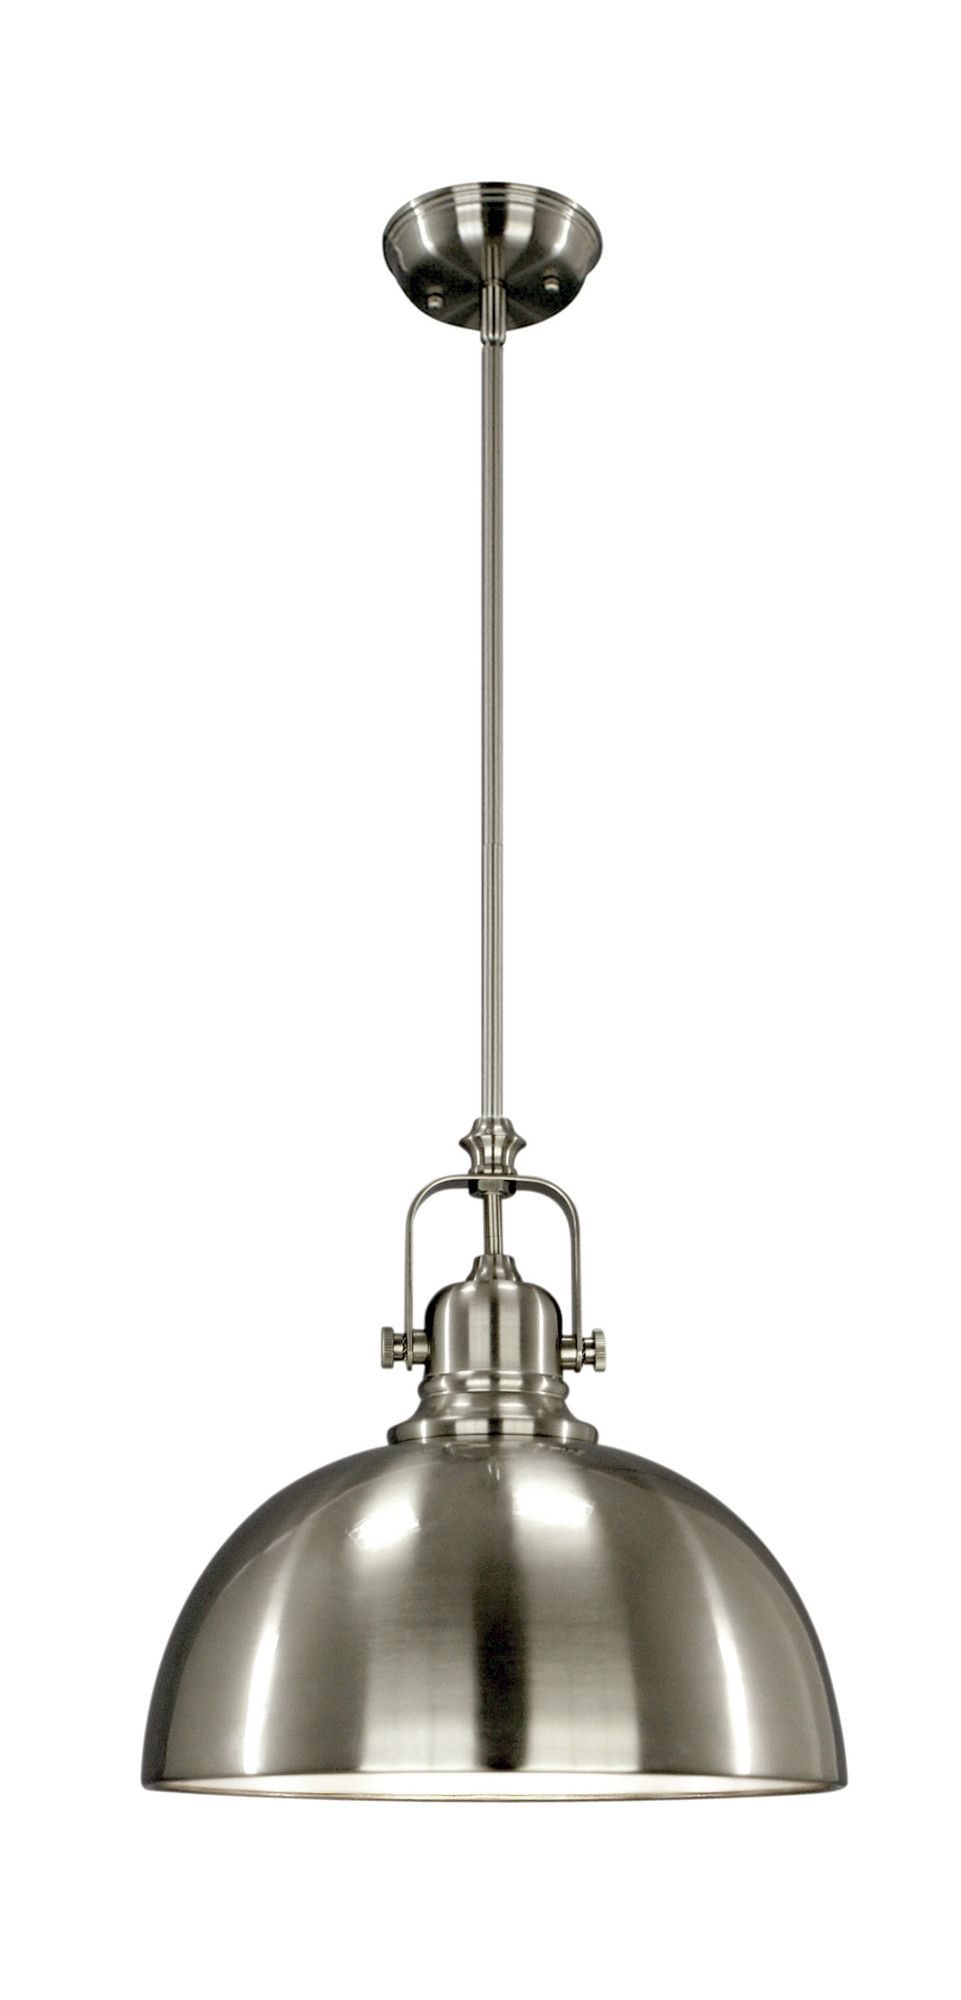 loft new pendant ball shade modern product bronze antique retro industrial light glass vintage